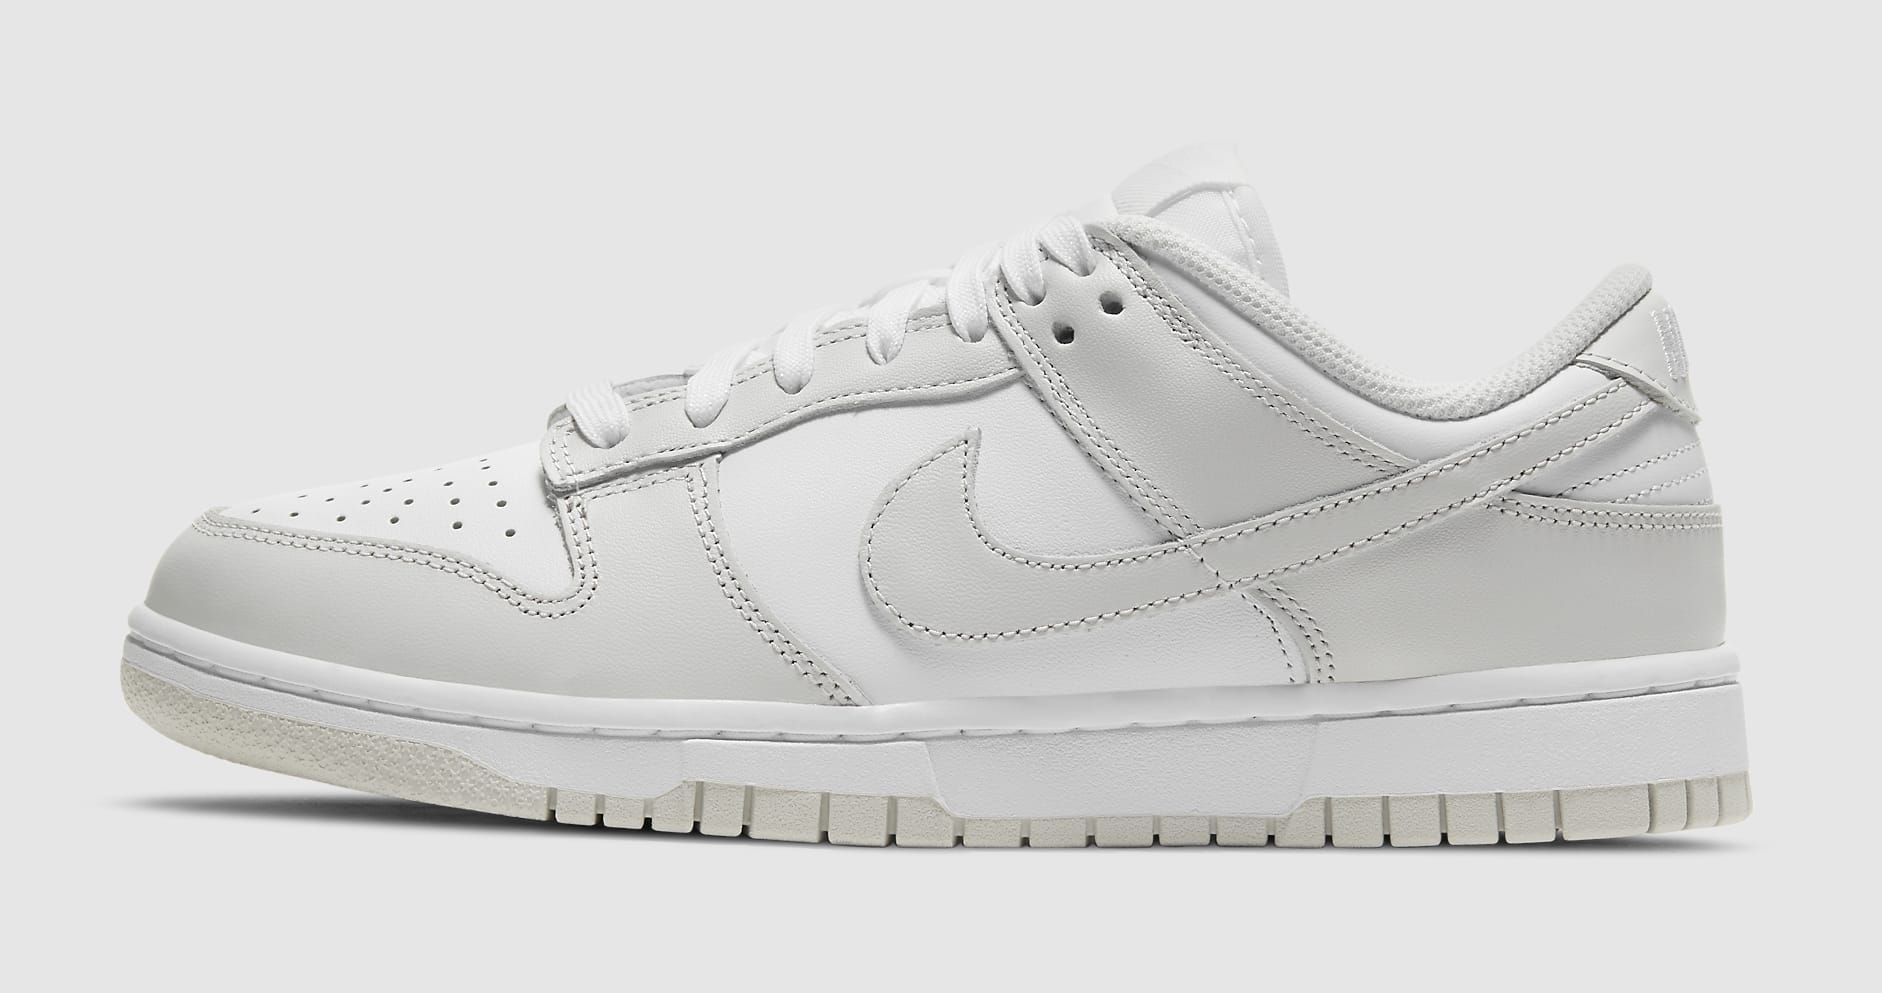 Nike Dunk Low Women's 'Photon Dust' DD1503-103 Lateral